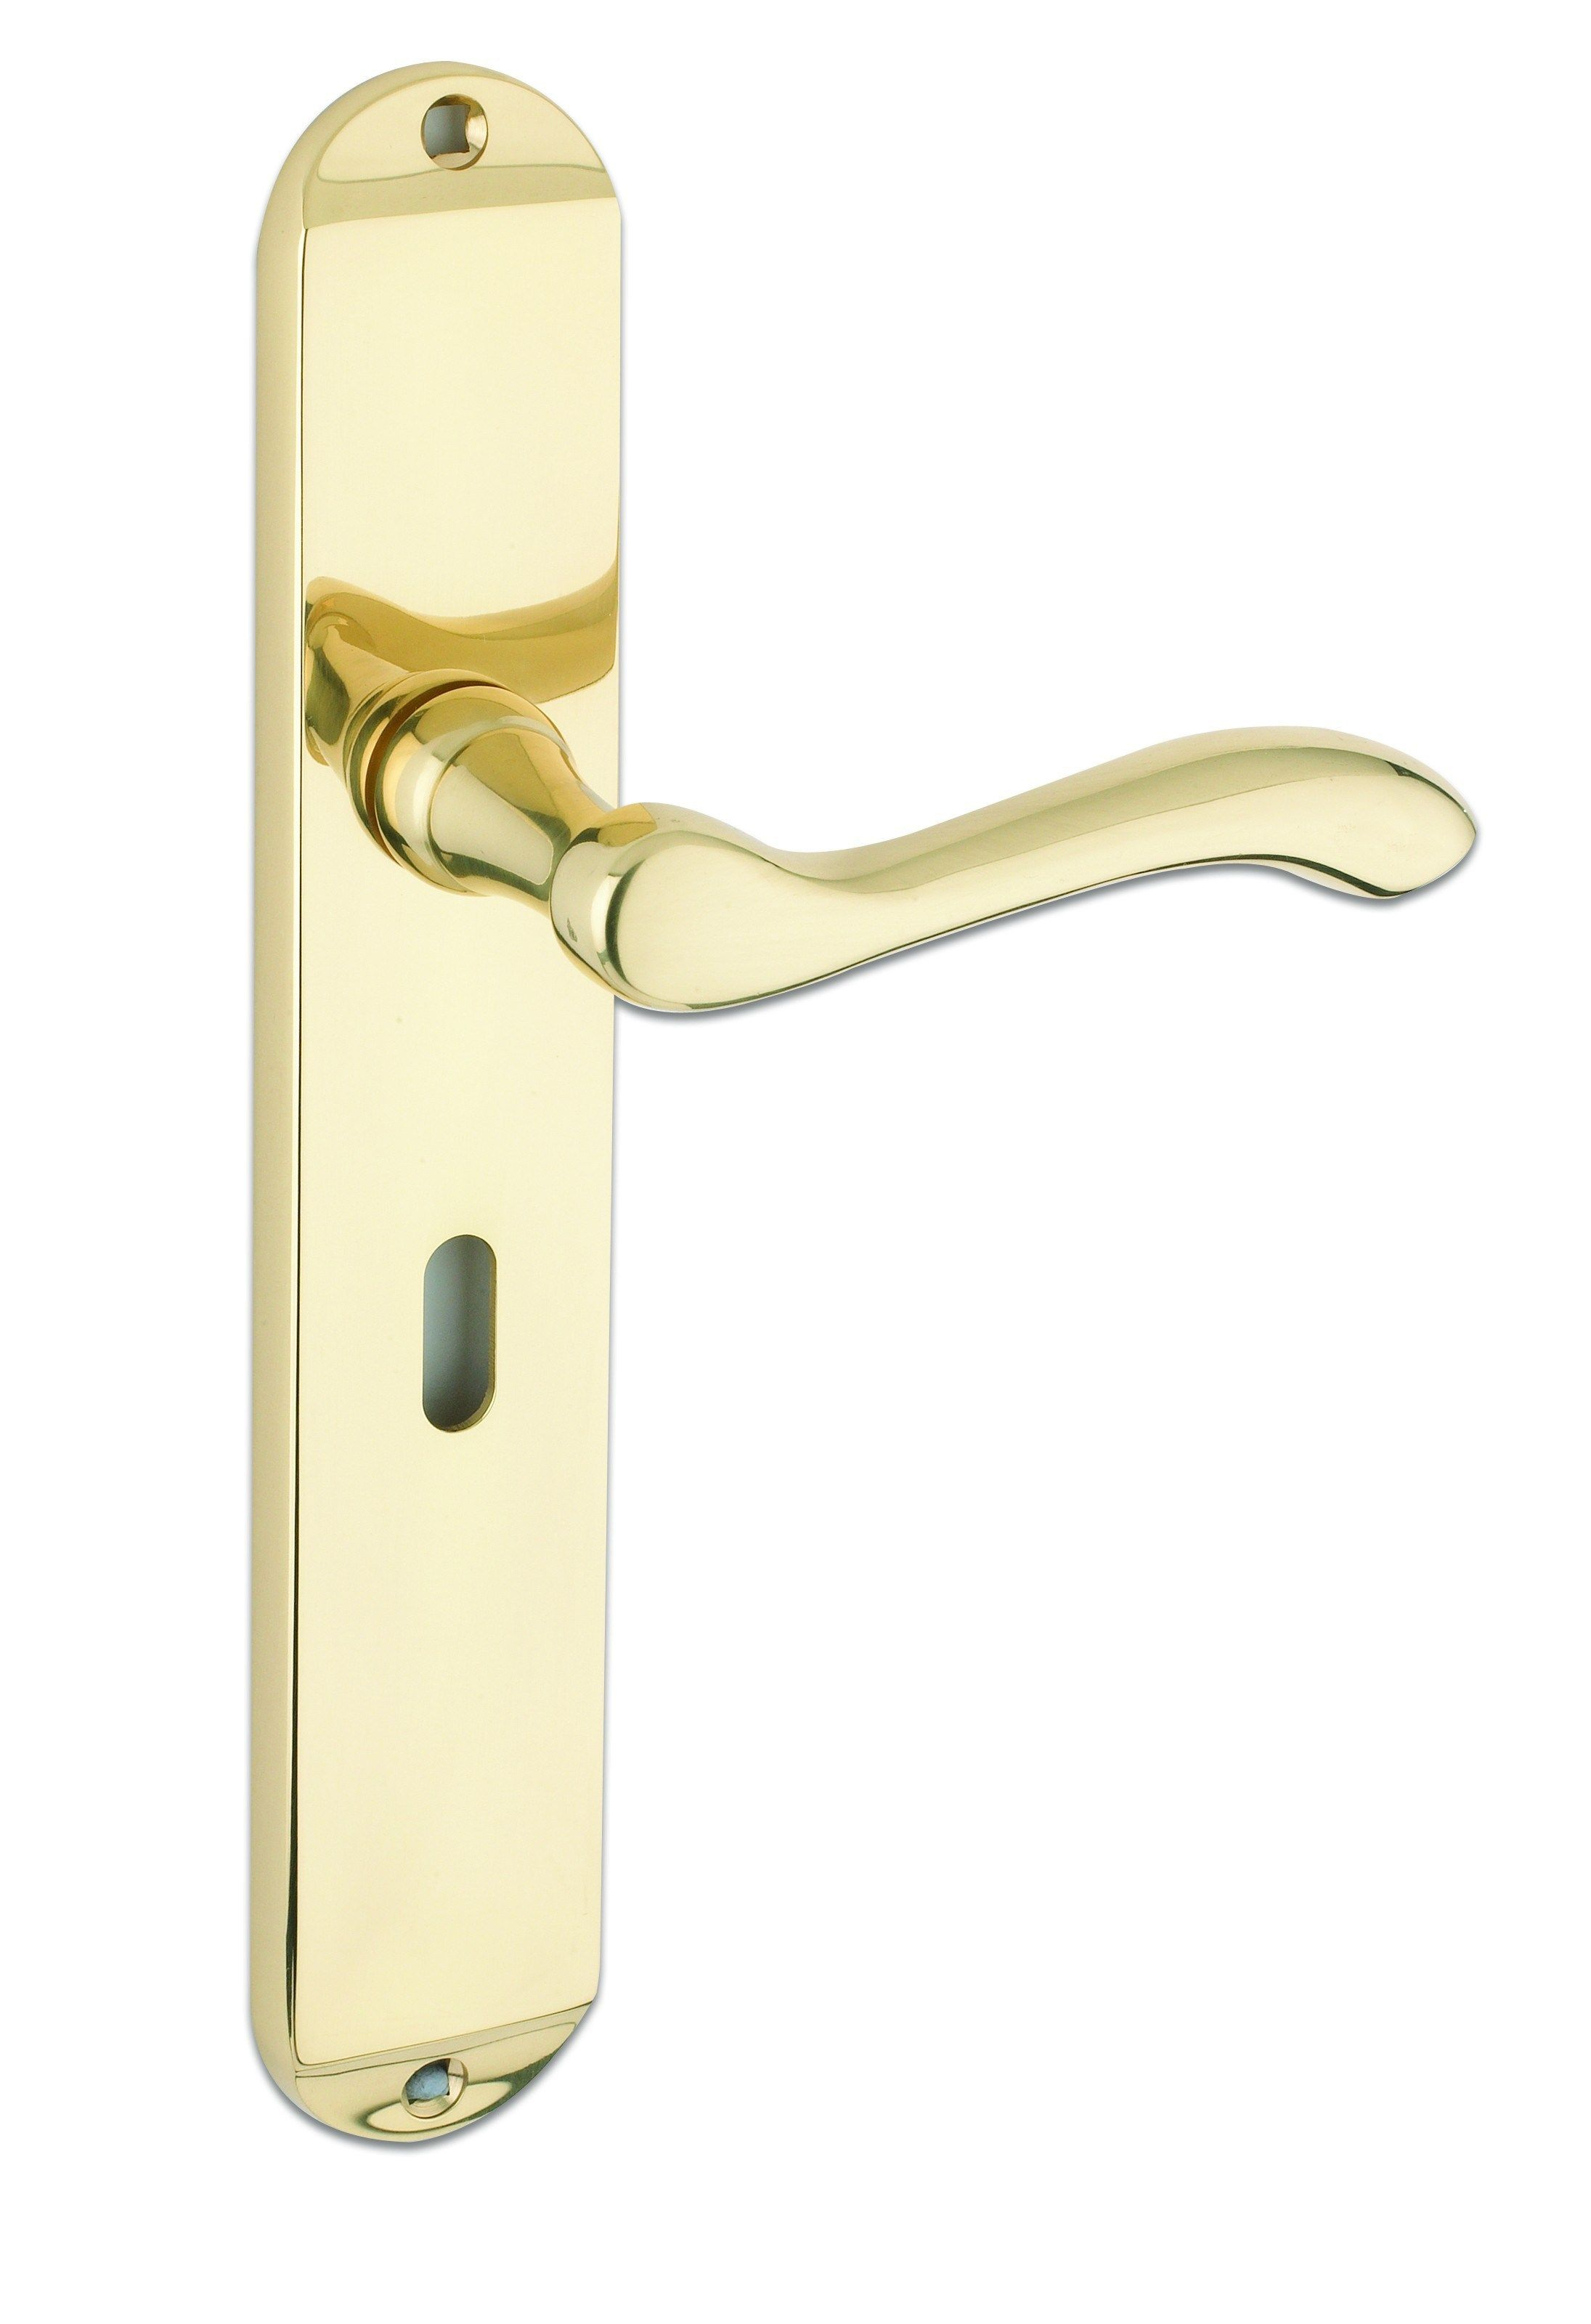 New Wright Products Storm Door Handle Home Furniture One